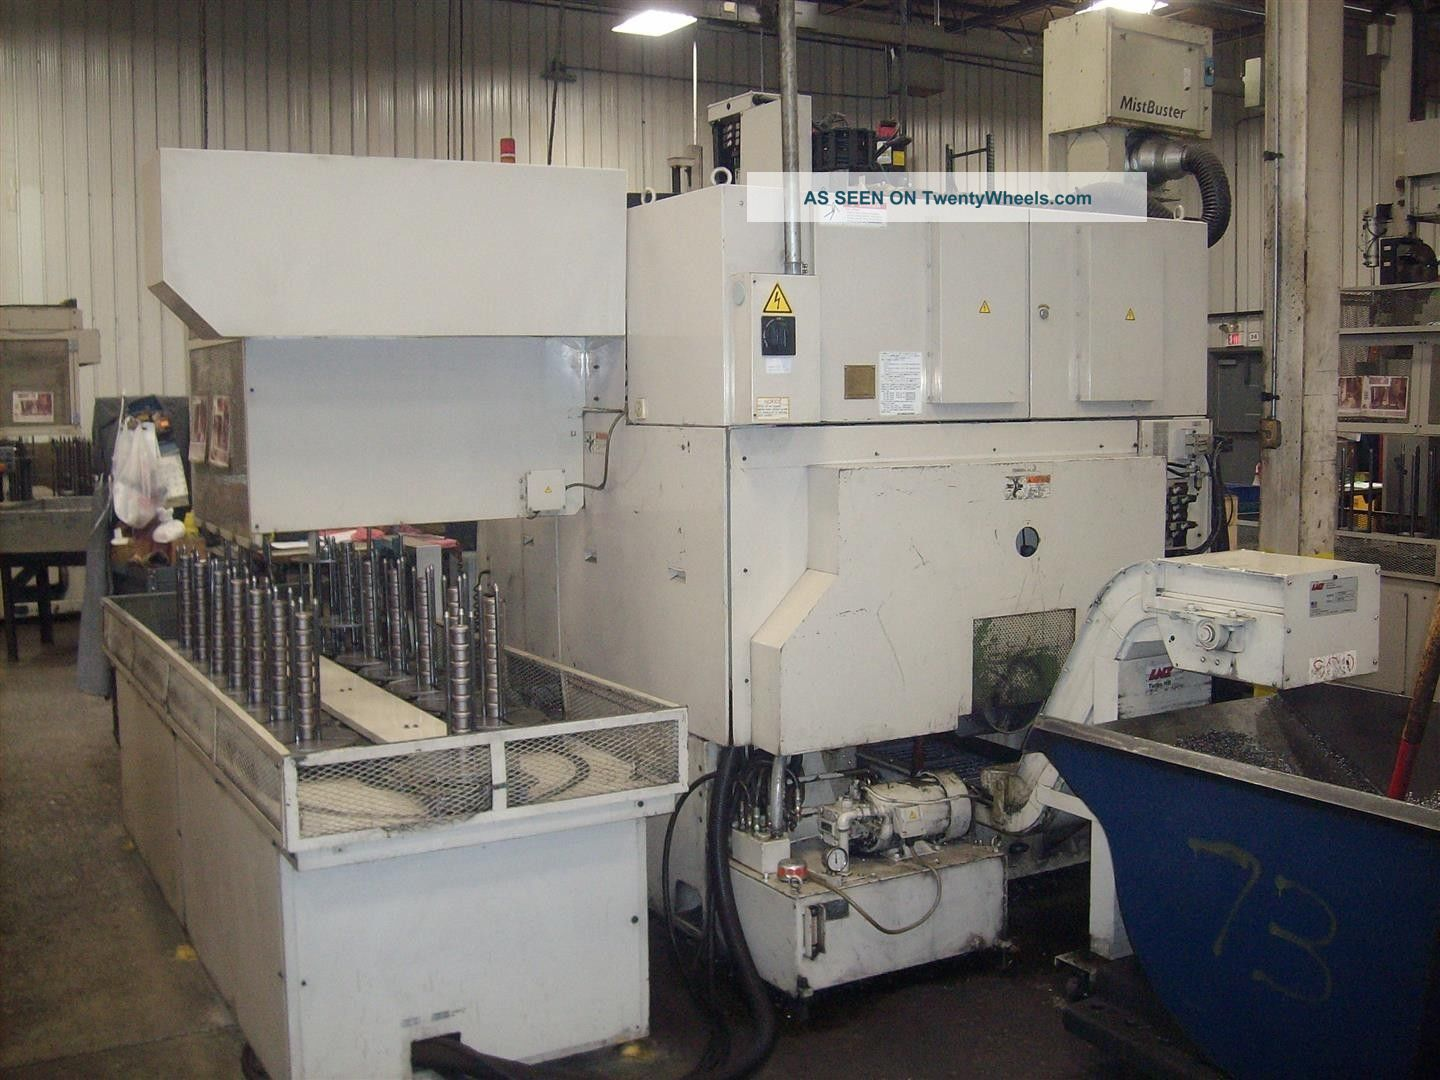 Okuma And Howa Spl - 25 Cnc Twin Turret Lathe Auto Gantry Loader Turning Center Metalworking Lathes photo